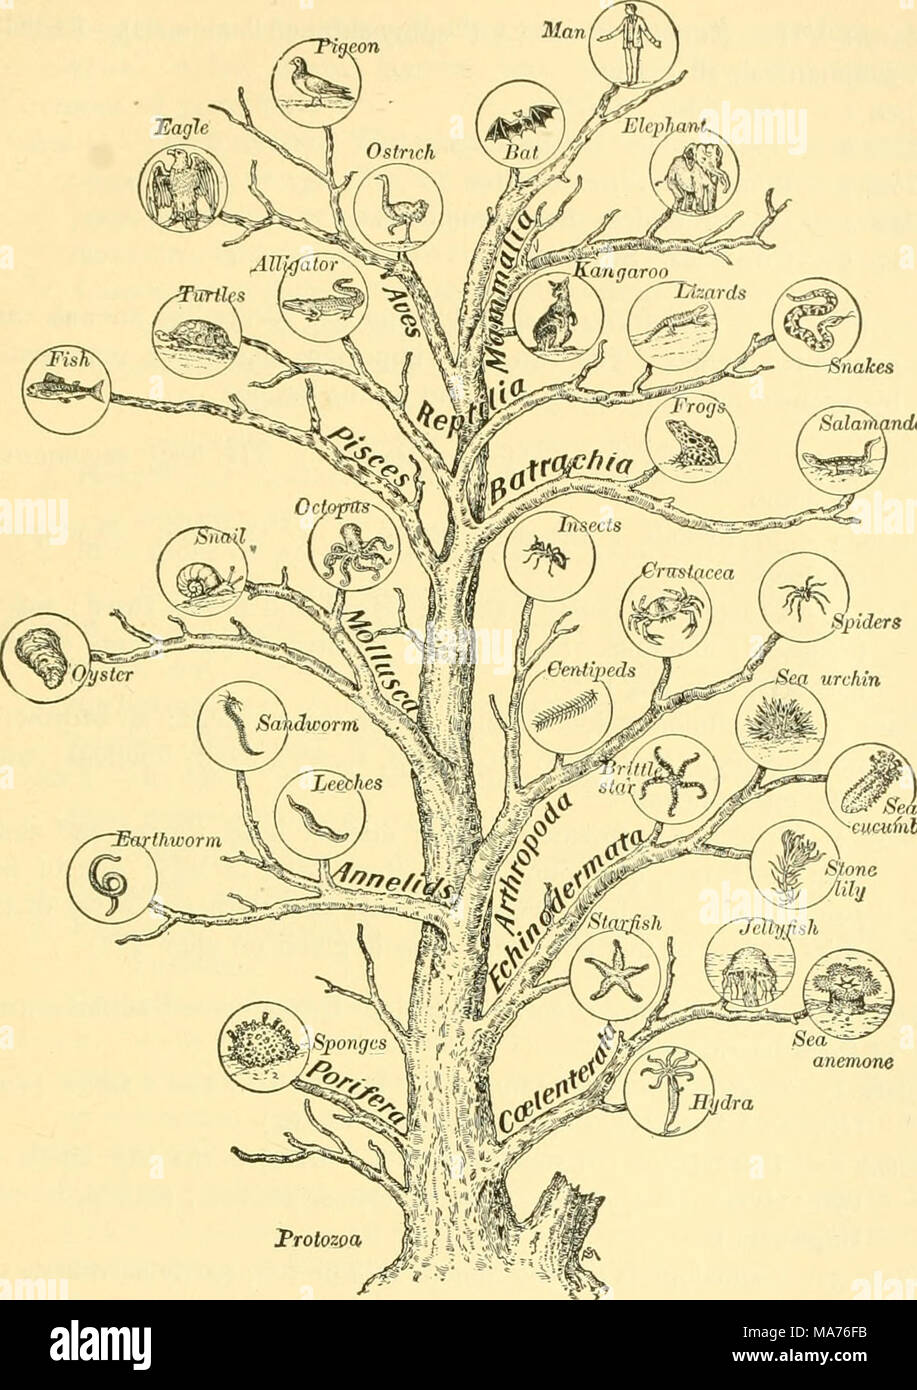 hight resolution of  elementary biology an introduction to the science of life cixcuinhet fig 252 genealogical tree of animal life this diagram is intended to suggest the